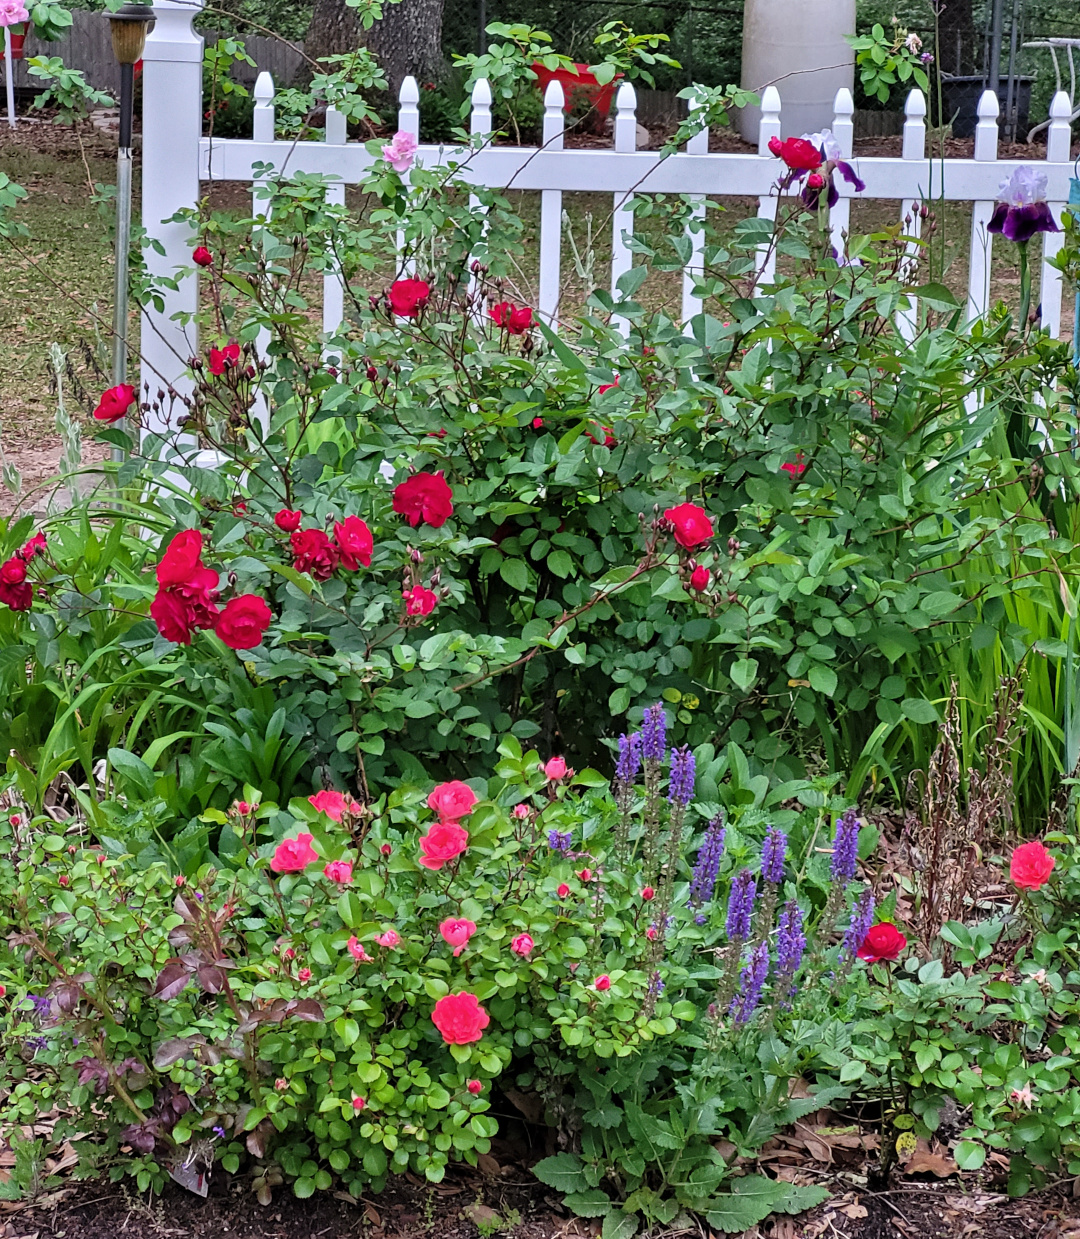 Flowery garden in front of a white fence